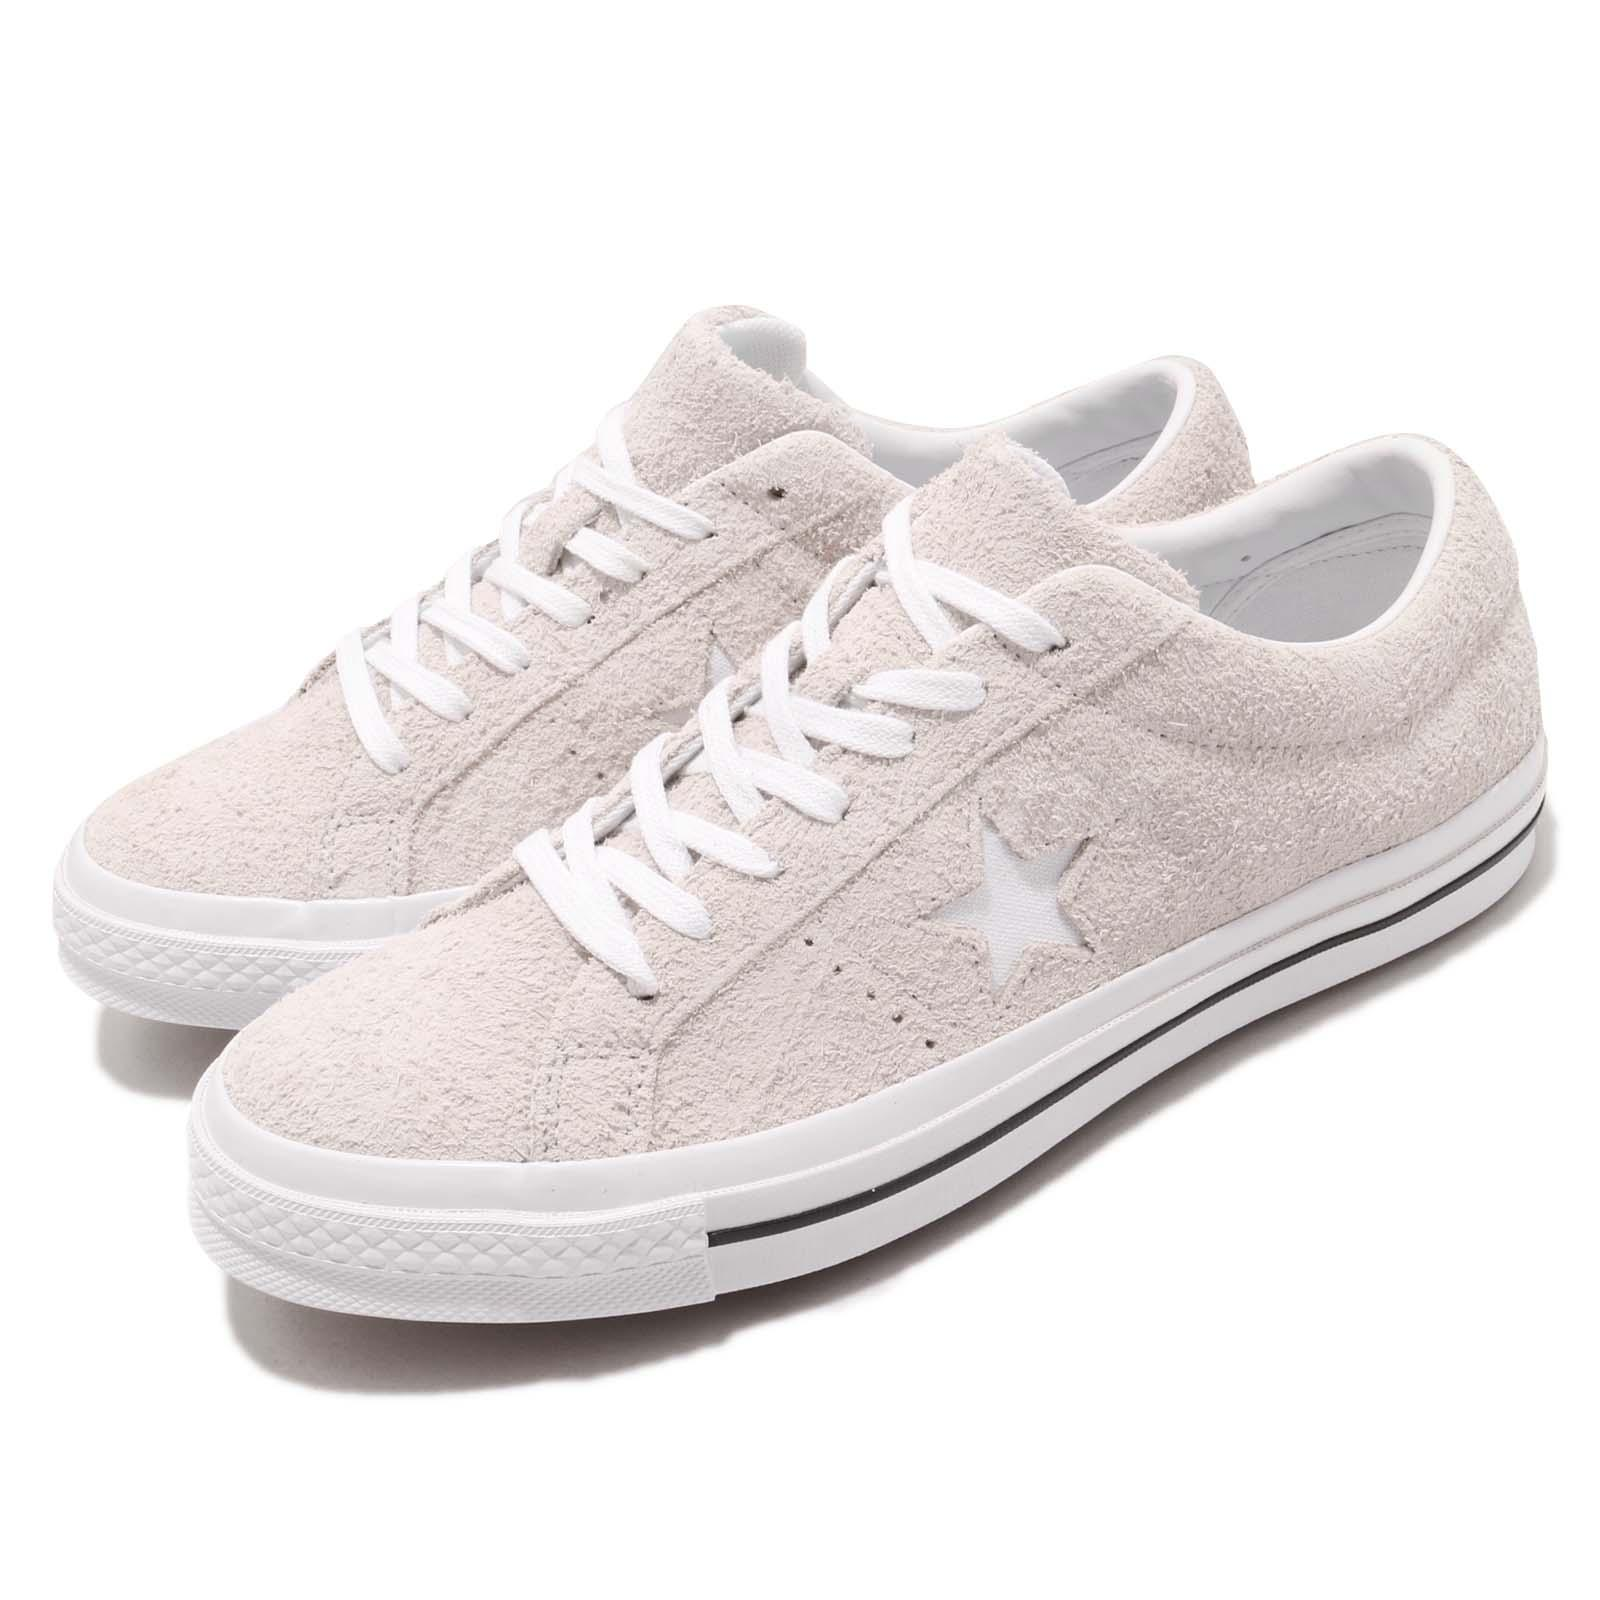 Converse One Star OX Grey White Suede